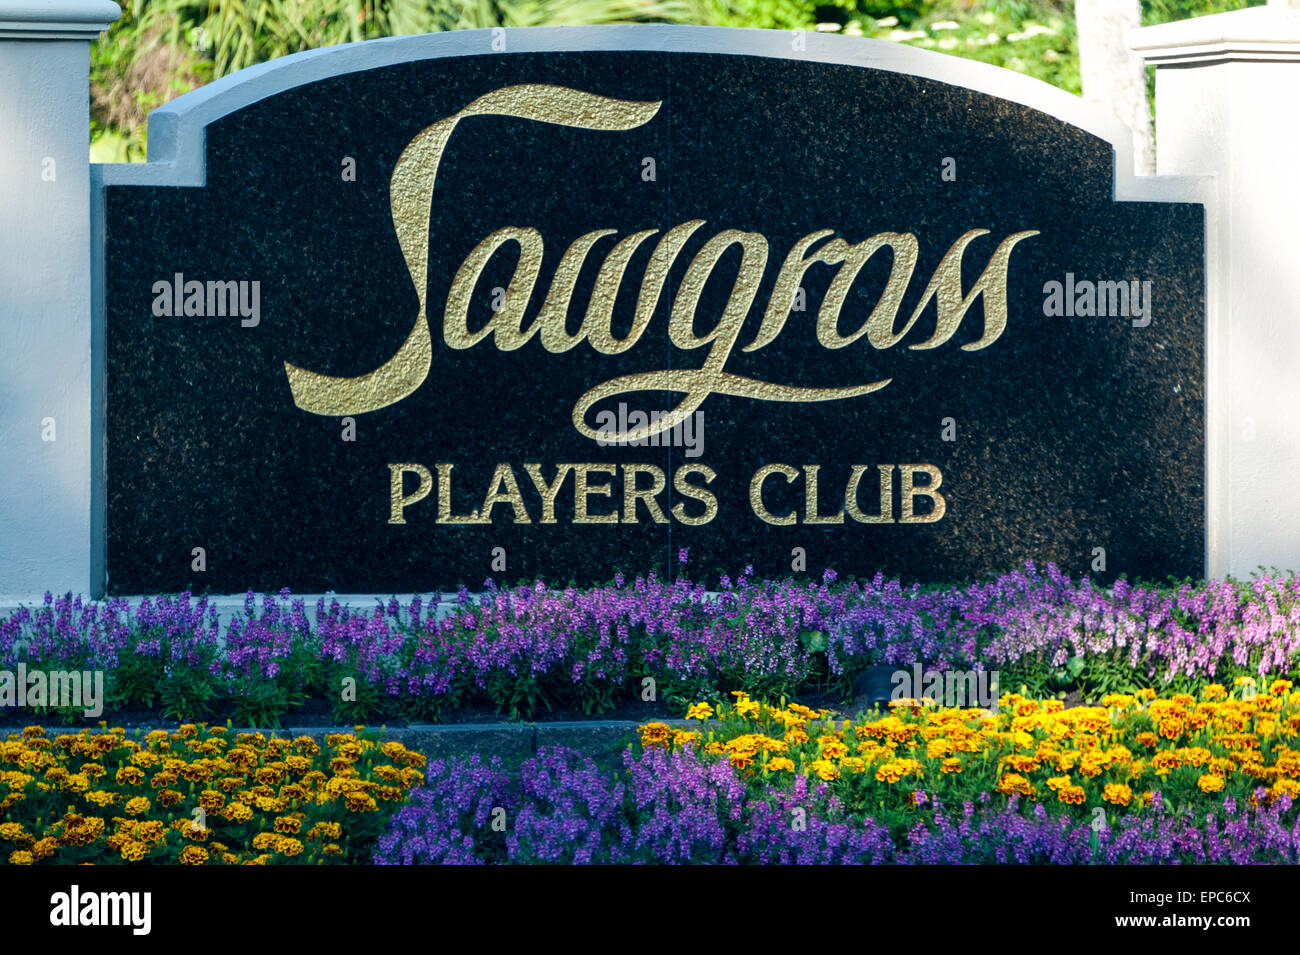 Sawgrass Players Club entry sign at TPC Sawgrass in Ponte Vedra Beach, Florida. USA. - Stock Image